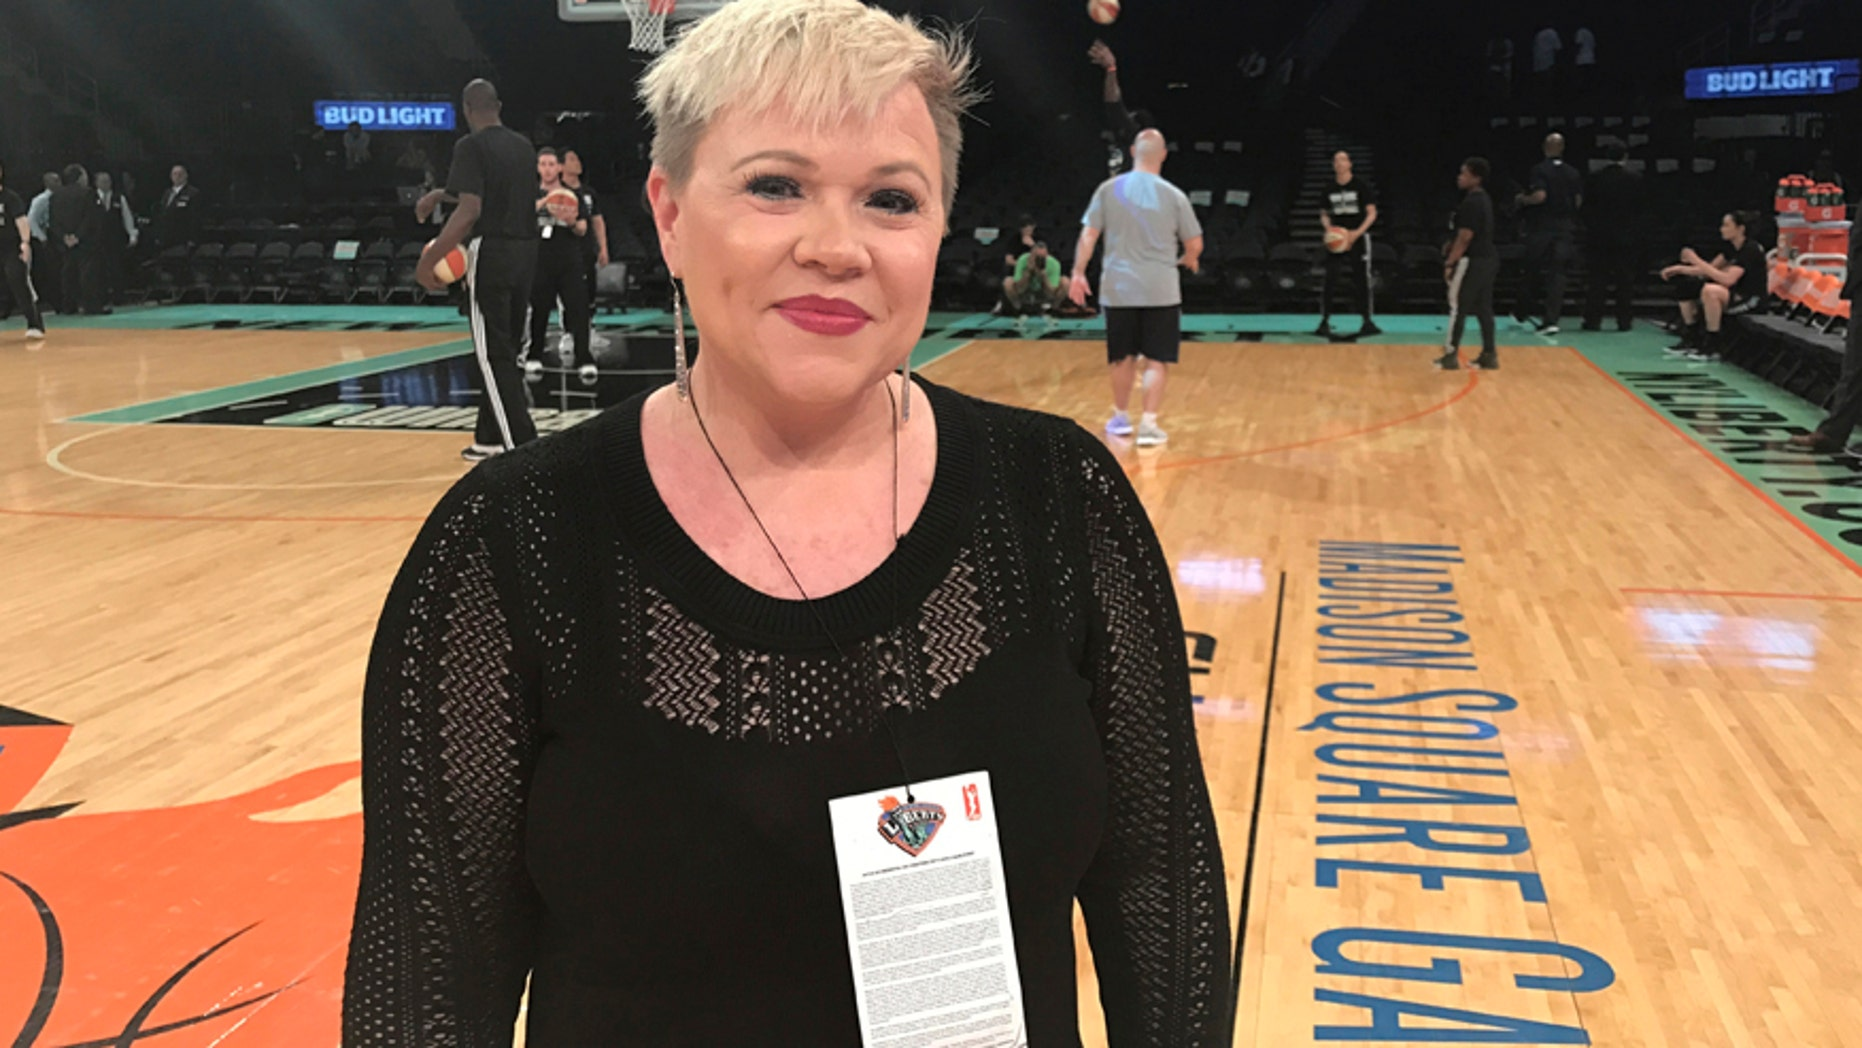 Holly Rowe stands on the court at Madison Square Garden in New York before a WNBA basketball game between the New York Liberty and the Minnesota Lynx, Thursday, May 18, 2017.